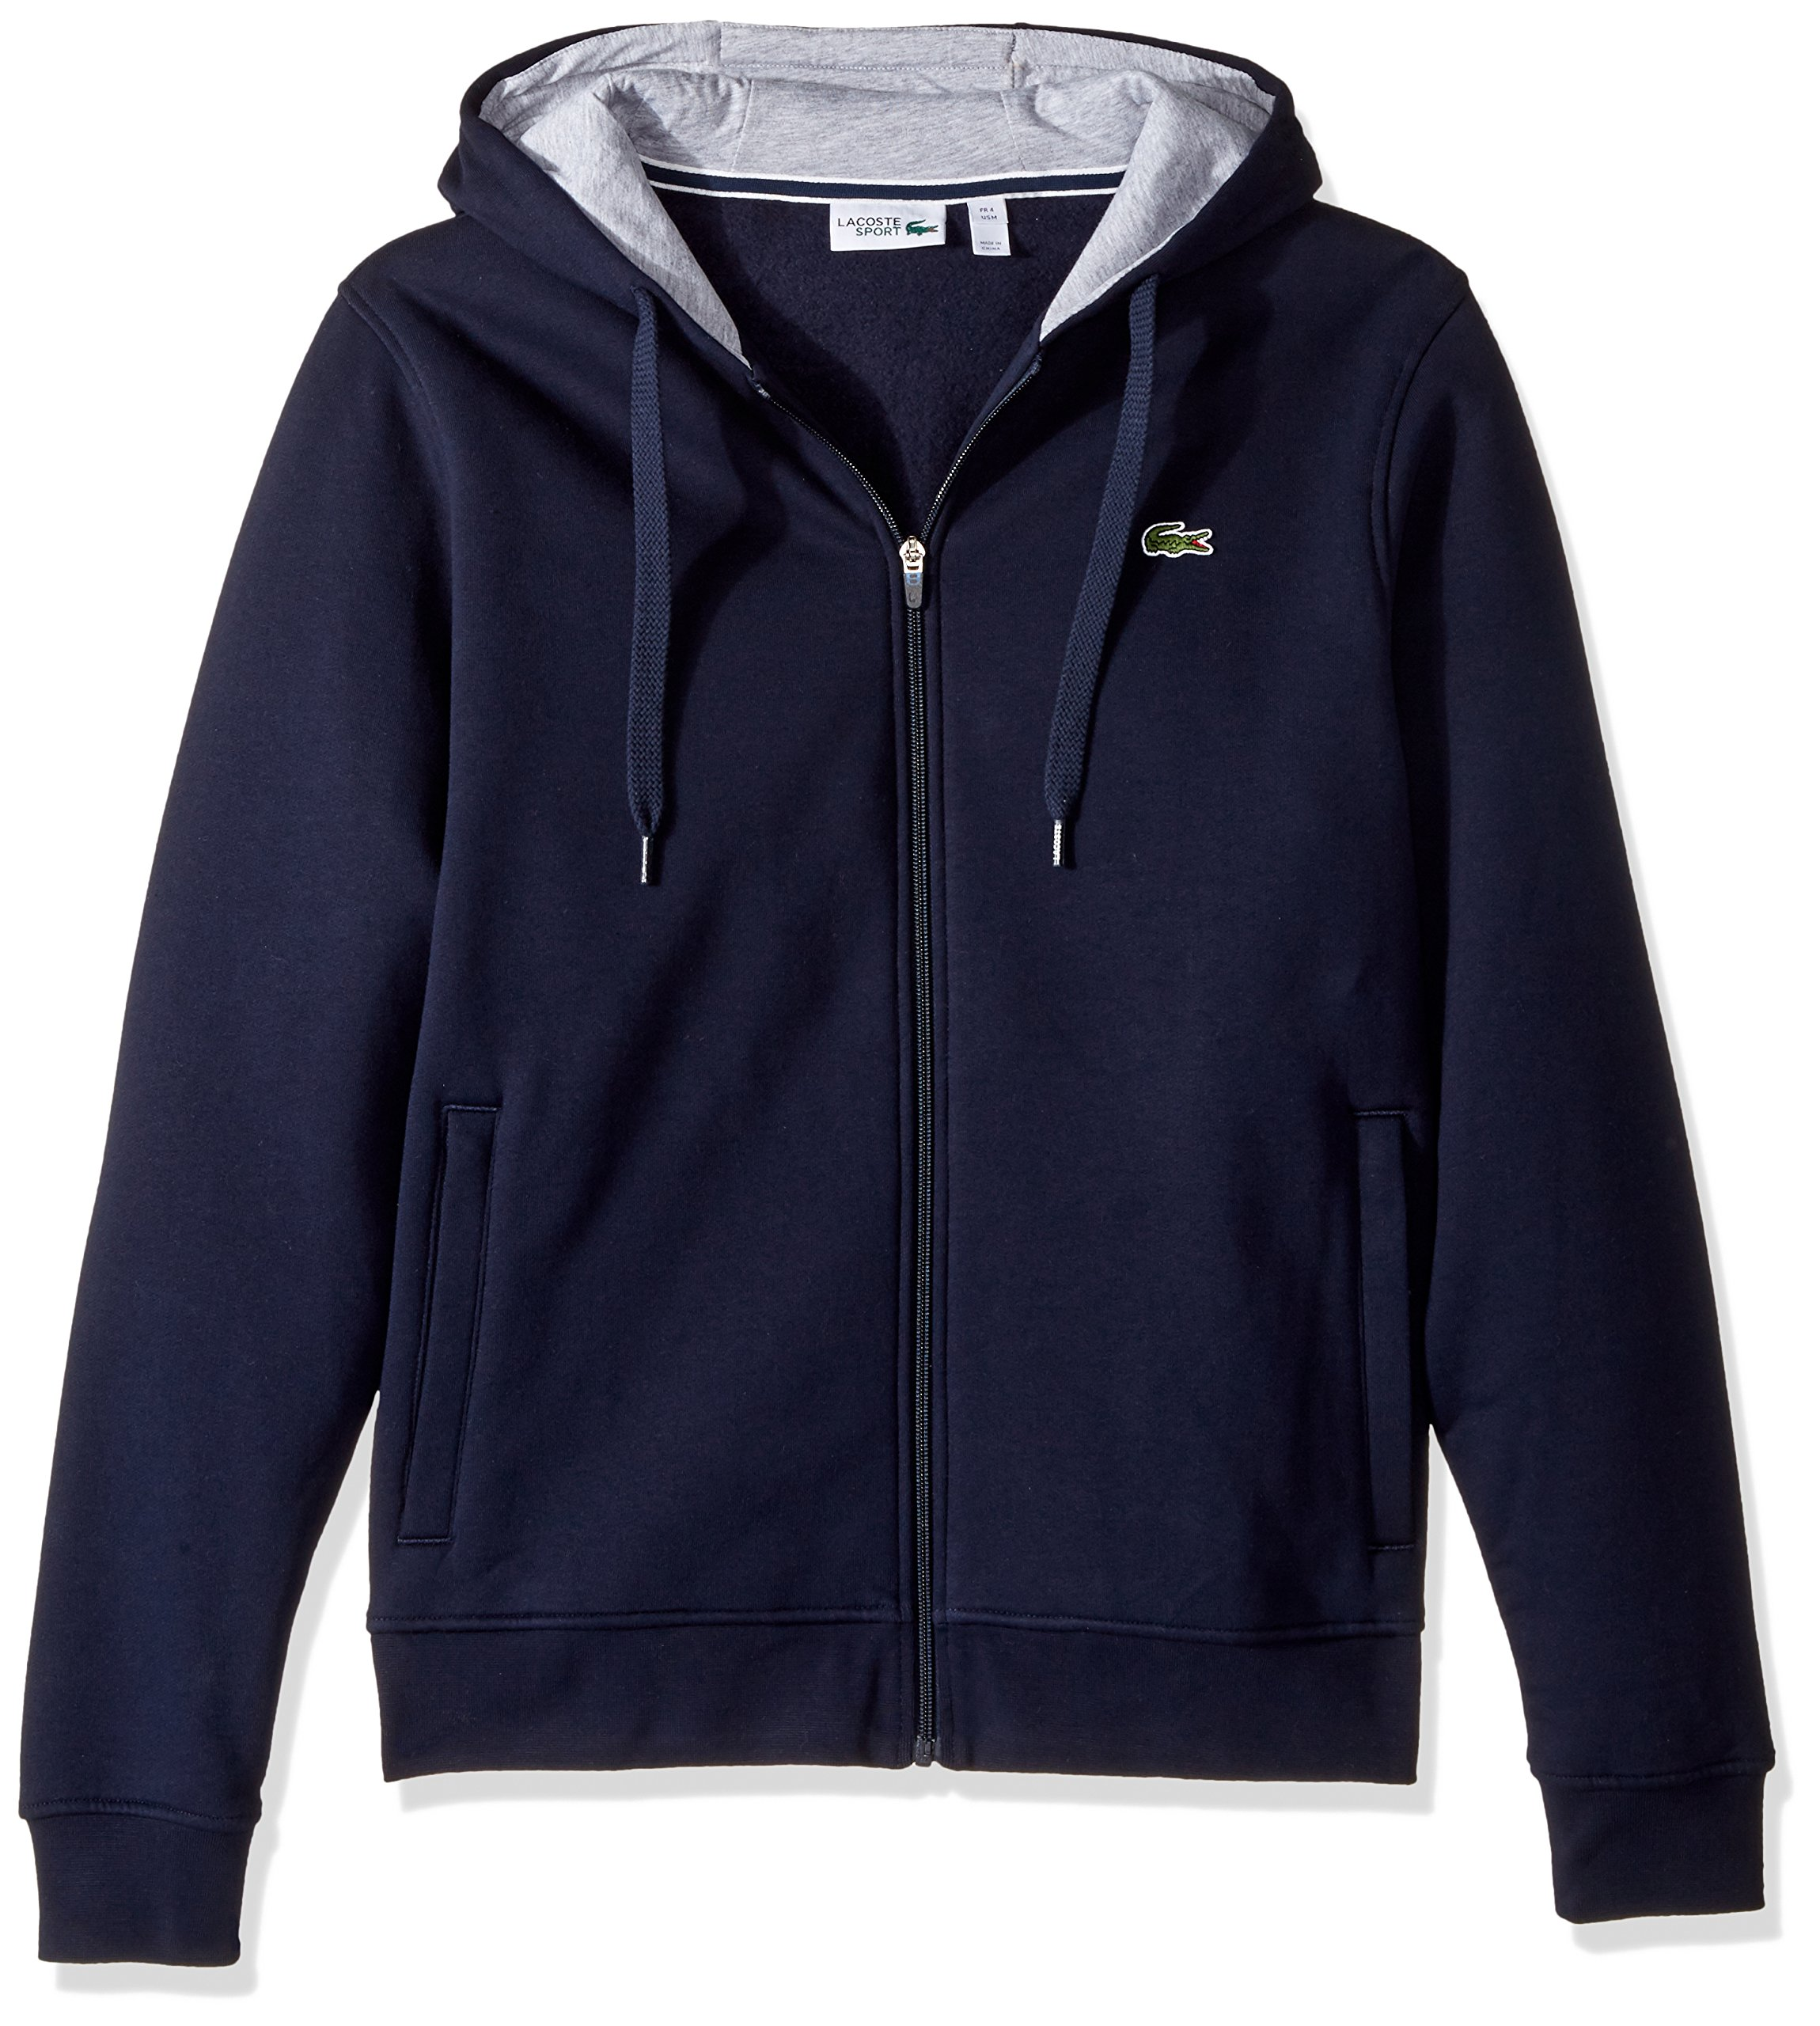 Lacoste Men's Full Zip Hoodie Fleece Sweatshirt, Navy Blue/Silver Chine, Small by Lacoste (Image #2)